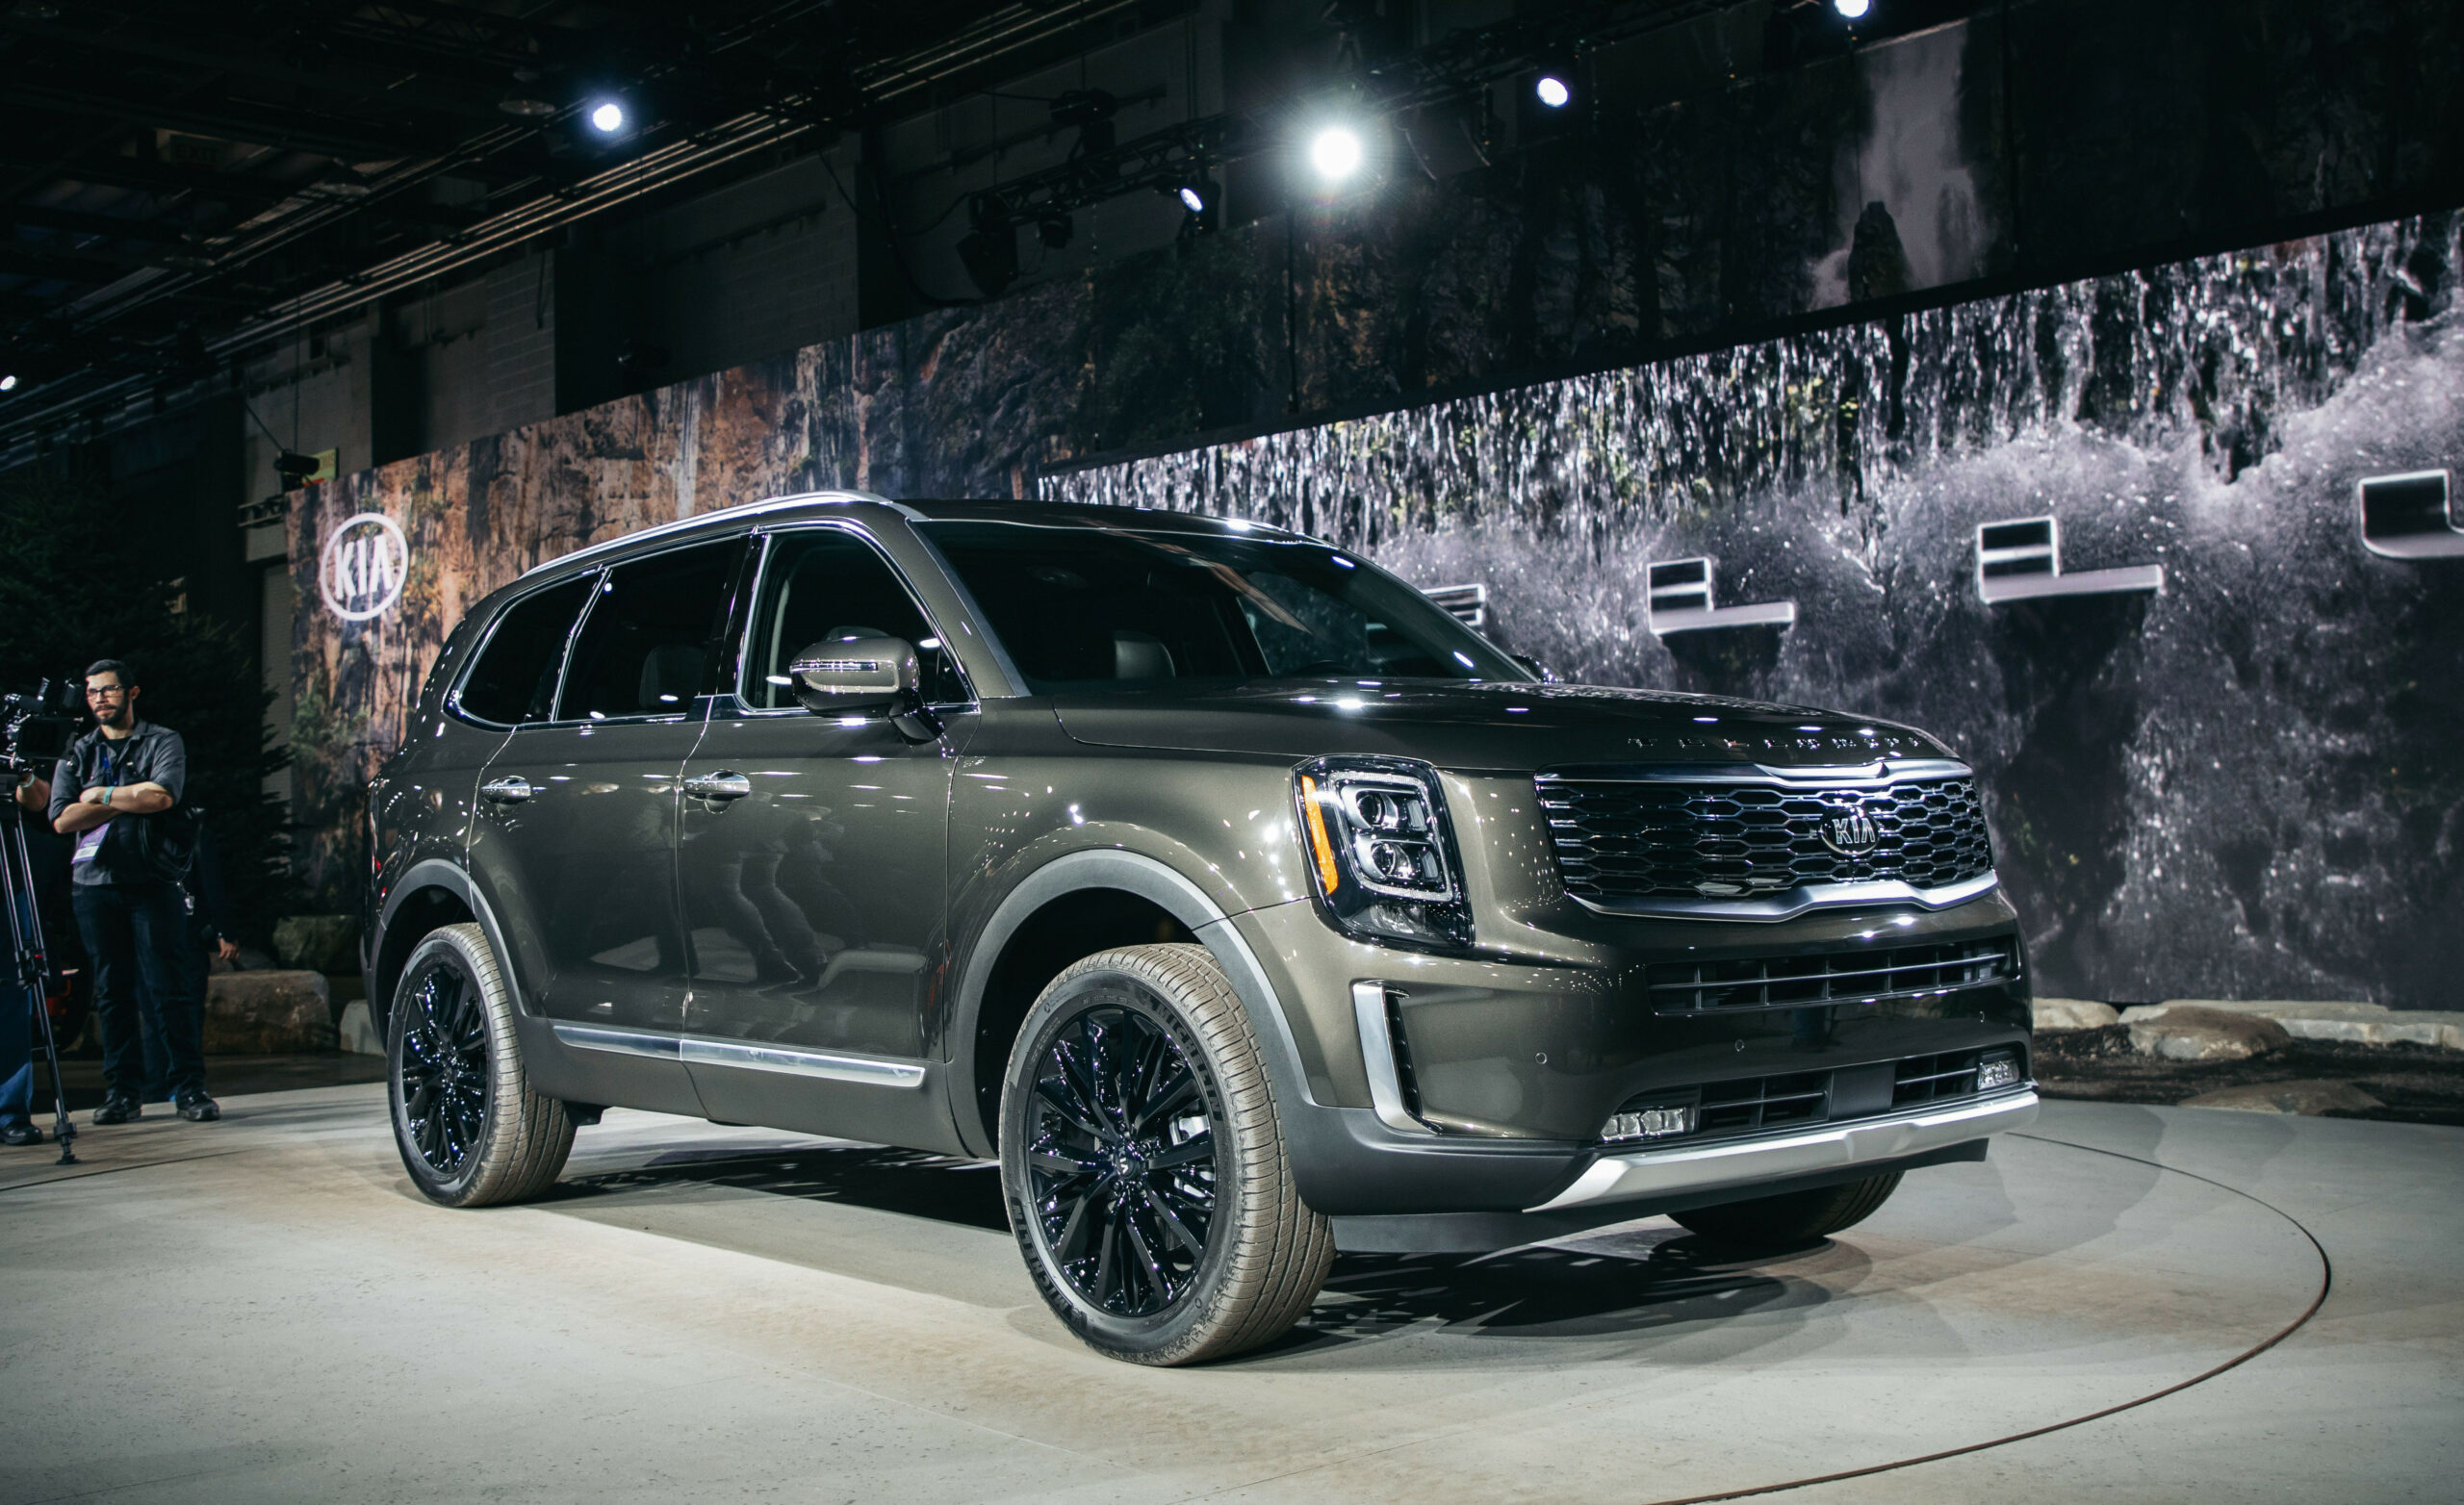 10 Kia Telluride Three-Row SUV – V-10 Flagship Crossover